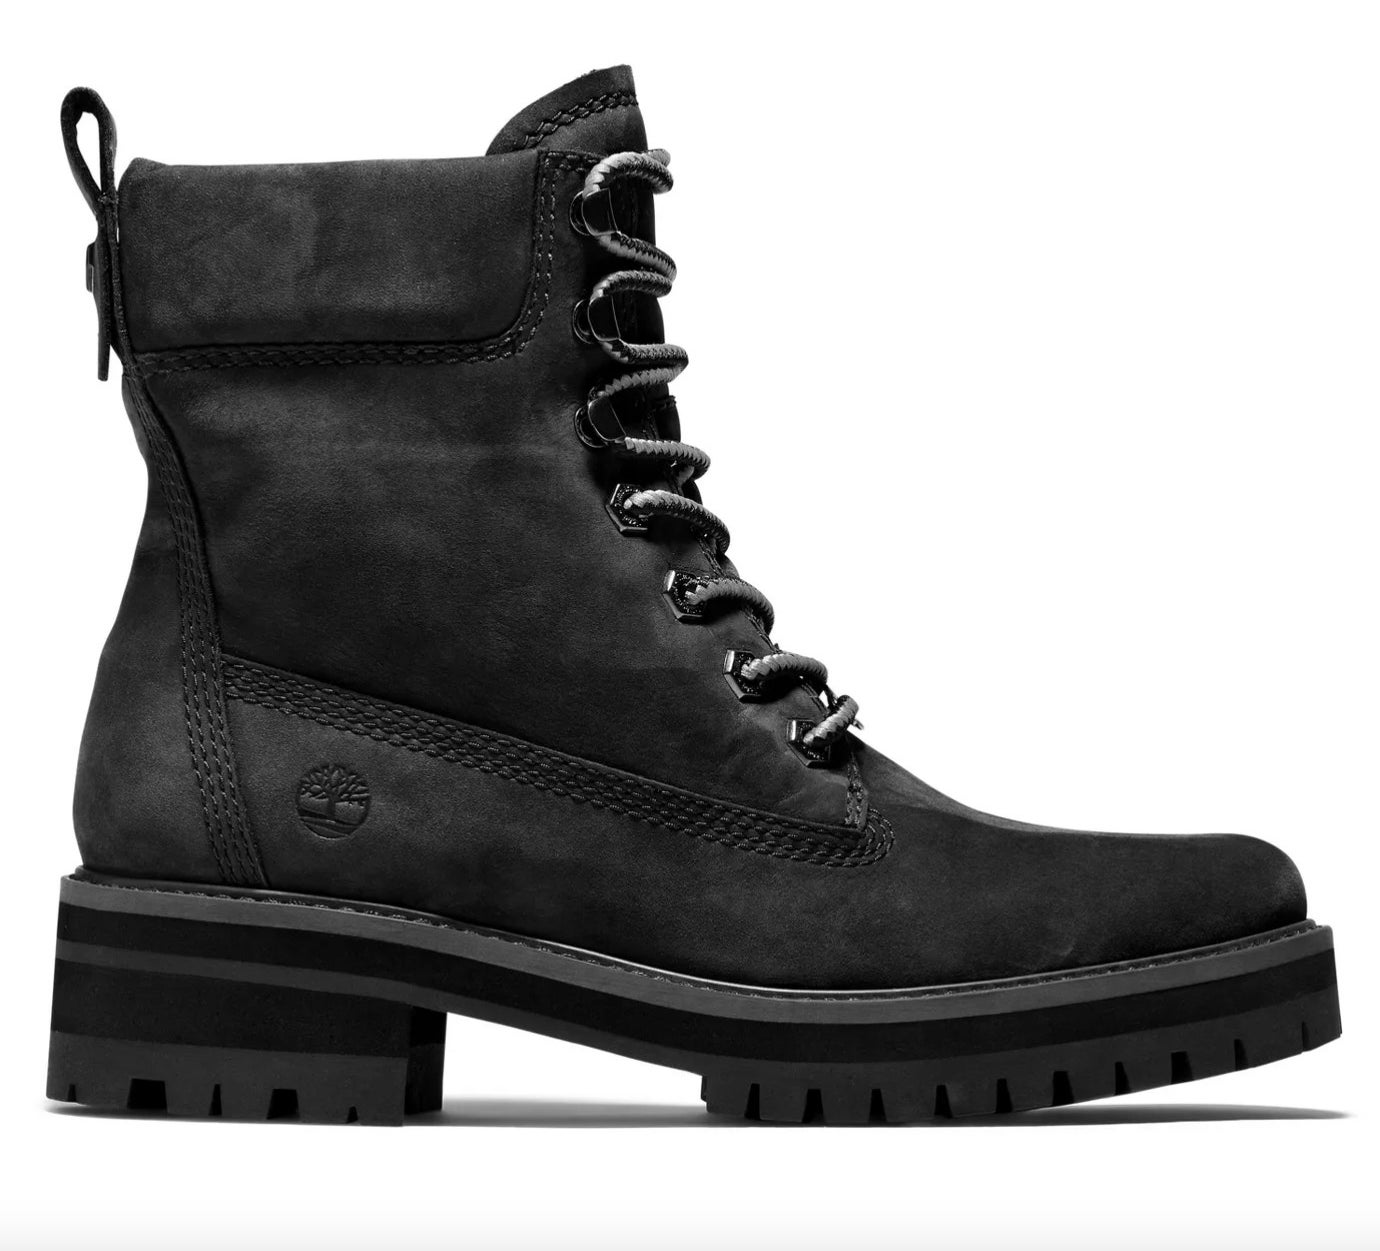 The pair of Timberland boots in black